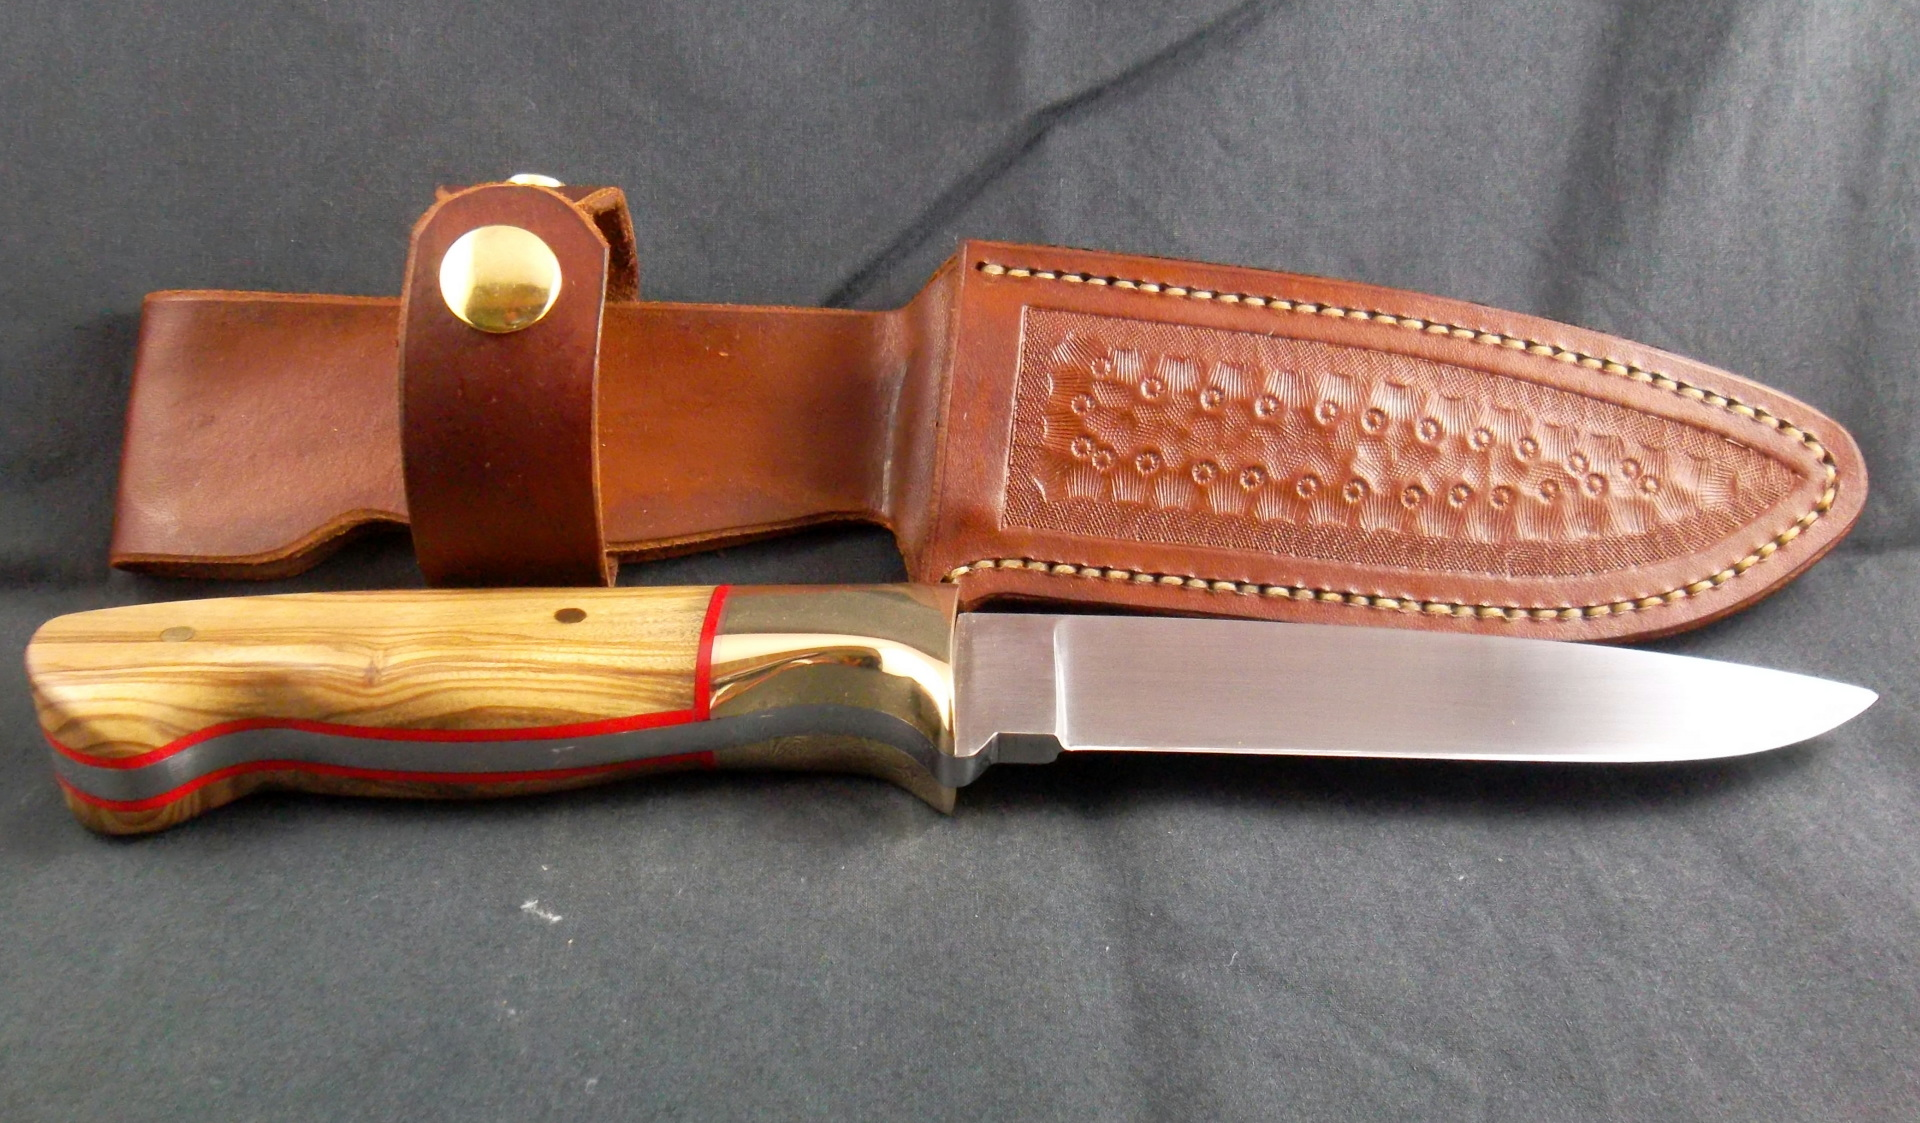 Handmade Knives, 1084 drop point hunting knife with brass and sandalwood. SLH Blades, Stacy Hall